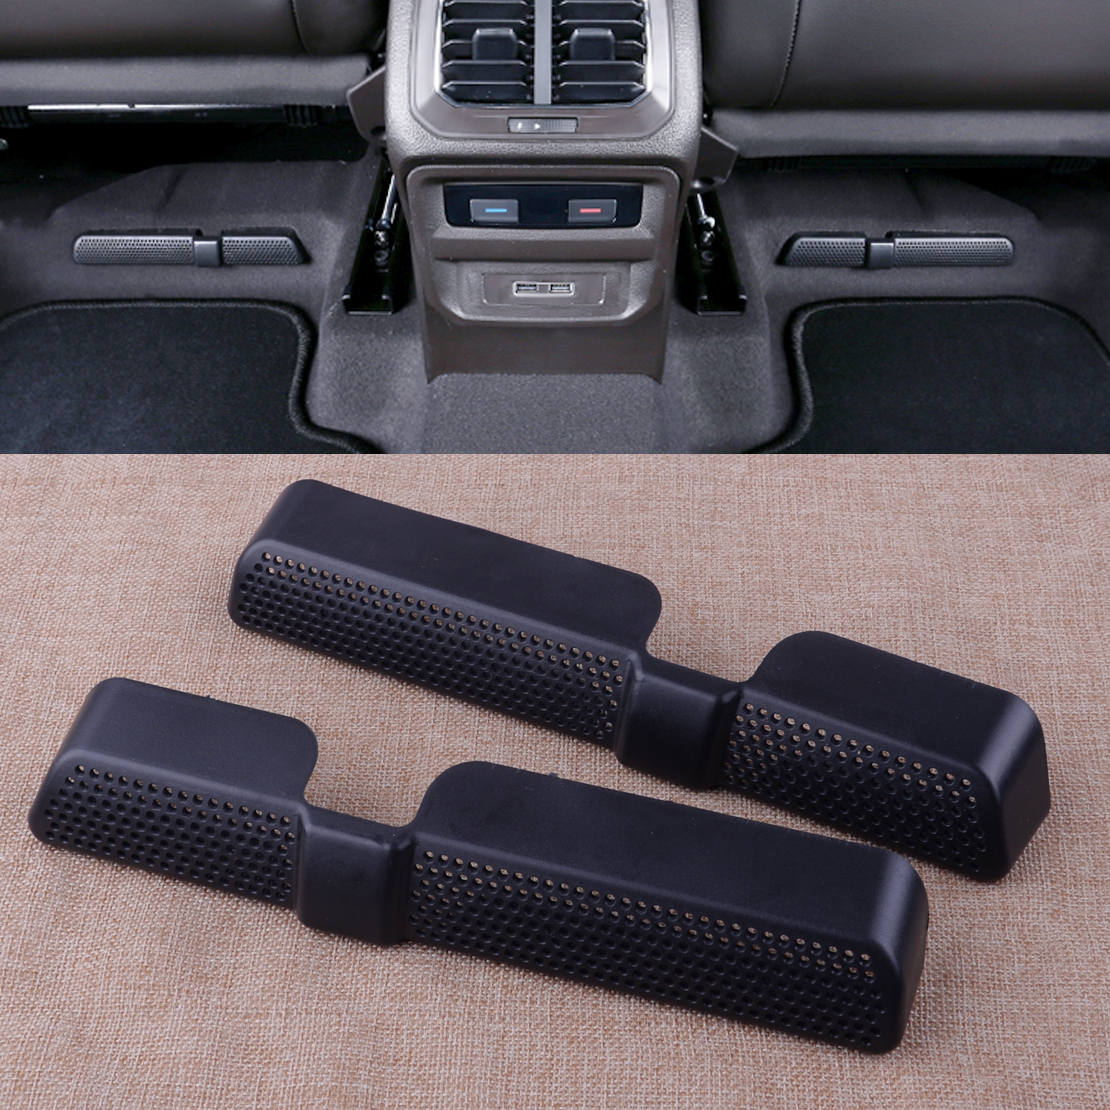 Beler 2pcs Black ABS Rear Seat Air Condition Vent Outlet Dust Protector Cover Trim Fit For VW Tiguan 2017 2018 2019